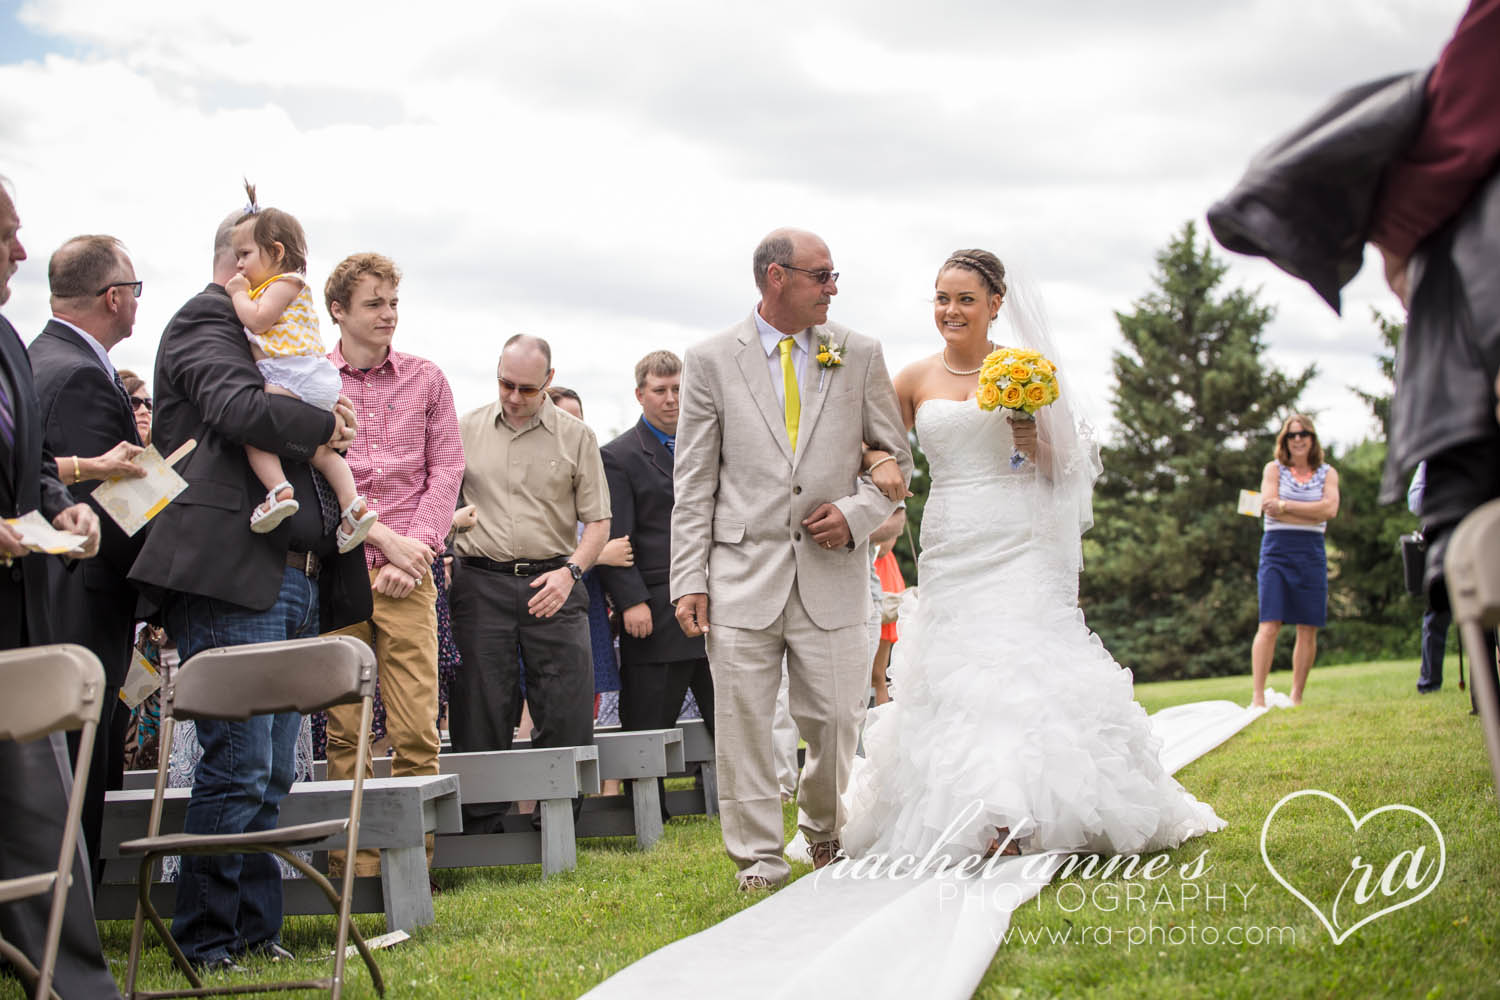 TKS-DUBOIS PA WEDDING-16.jpg